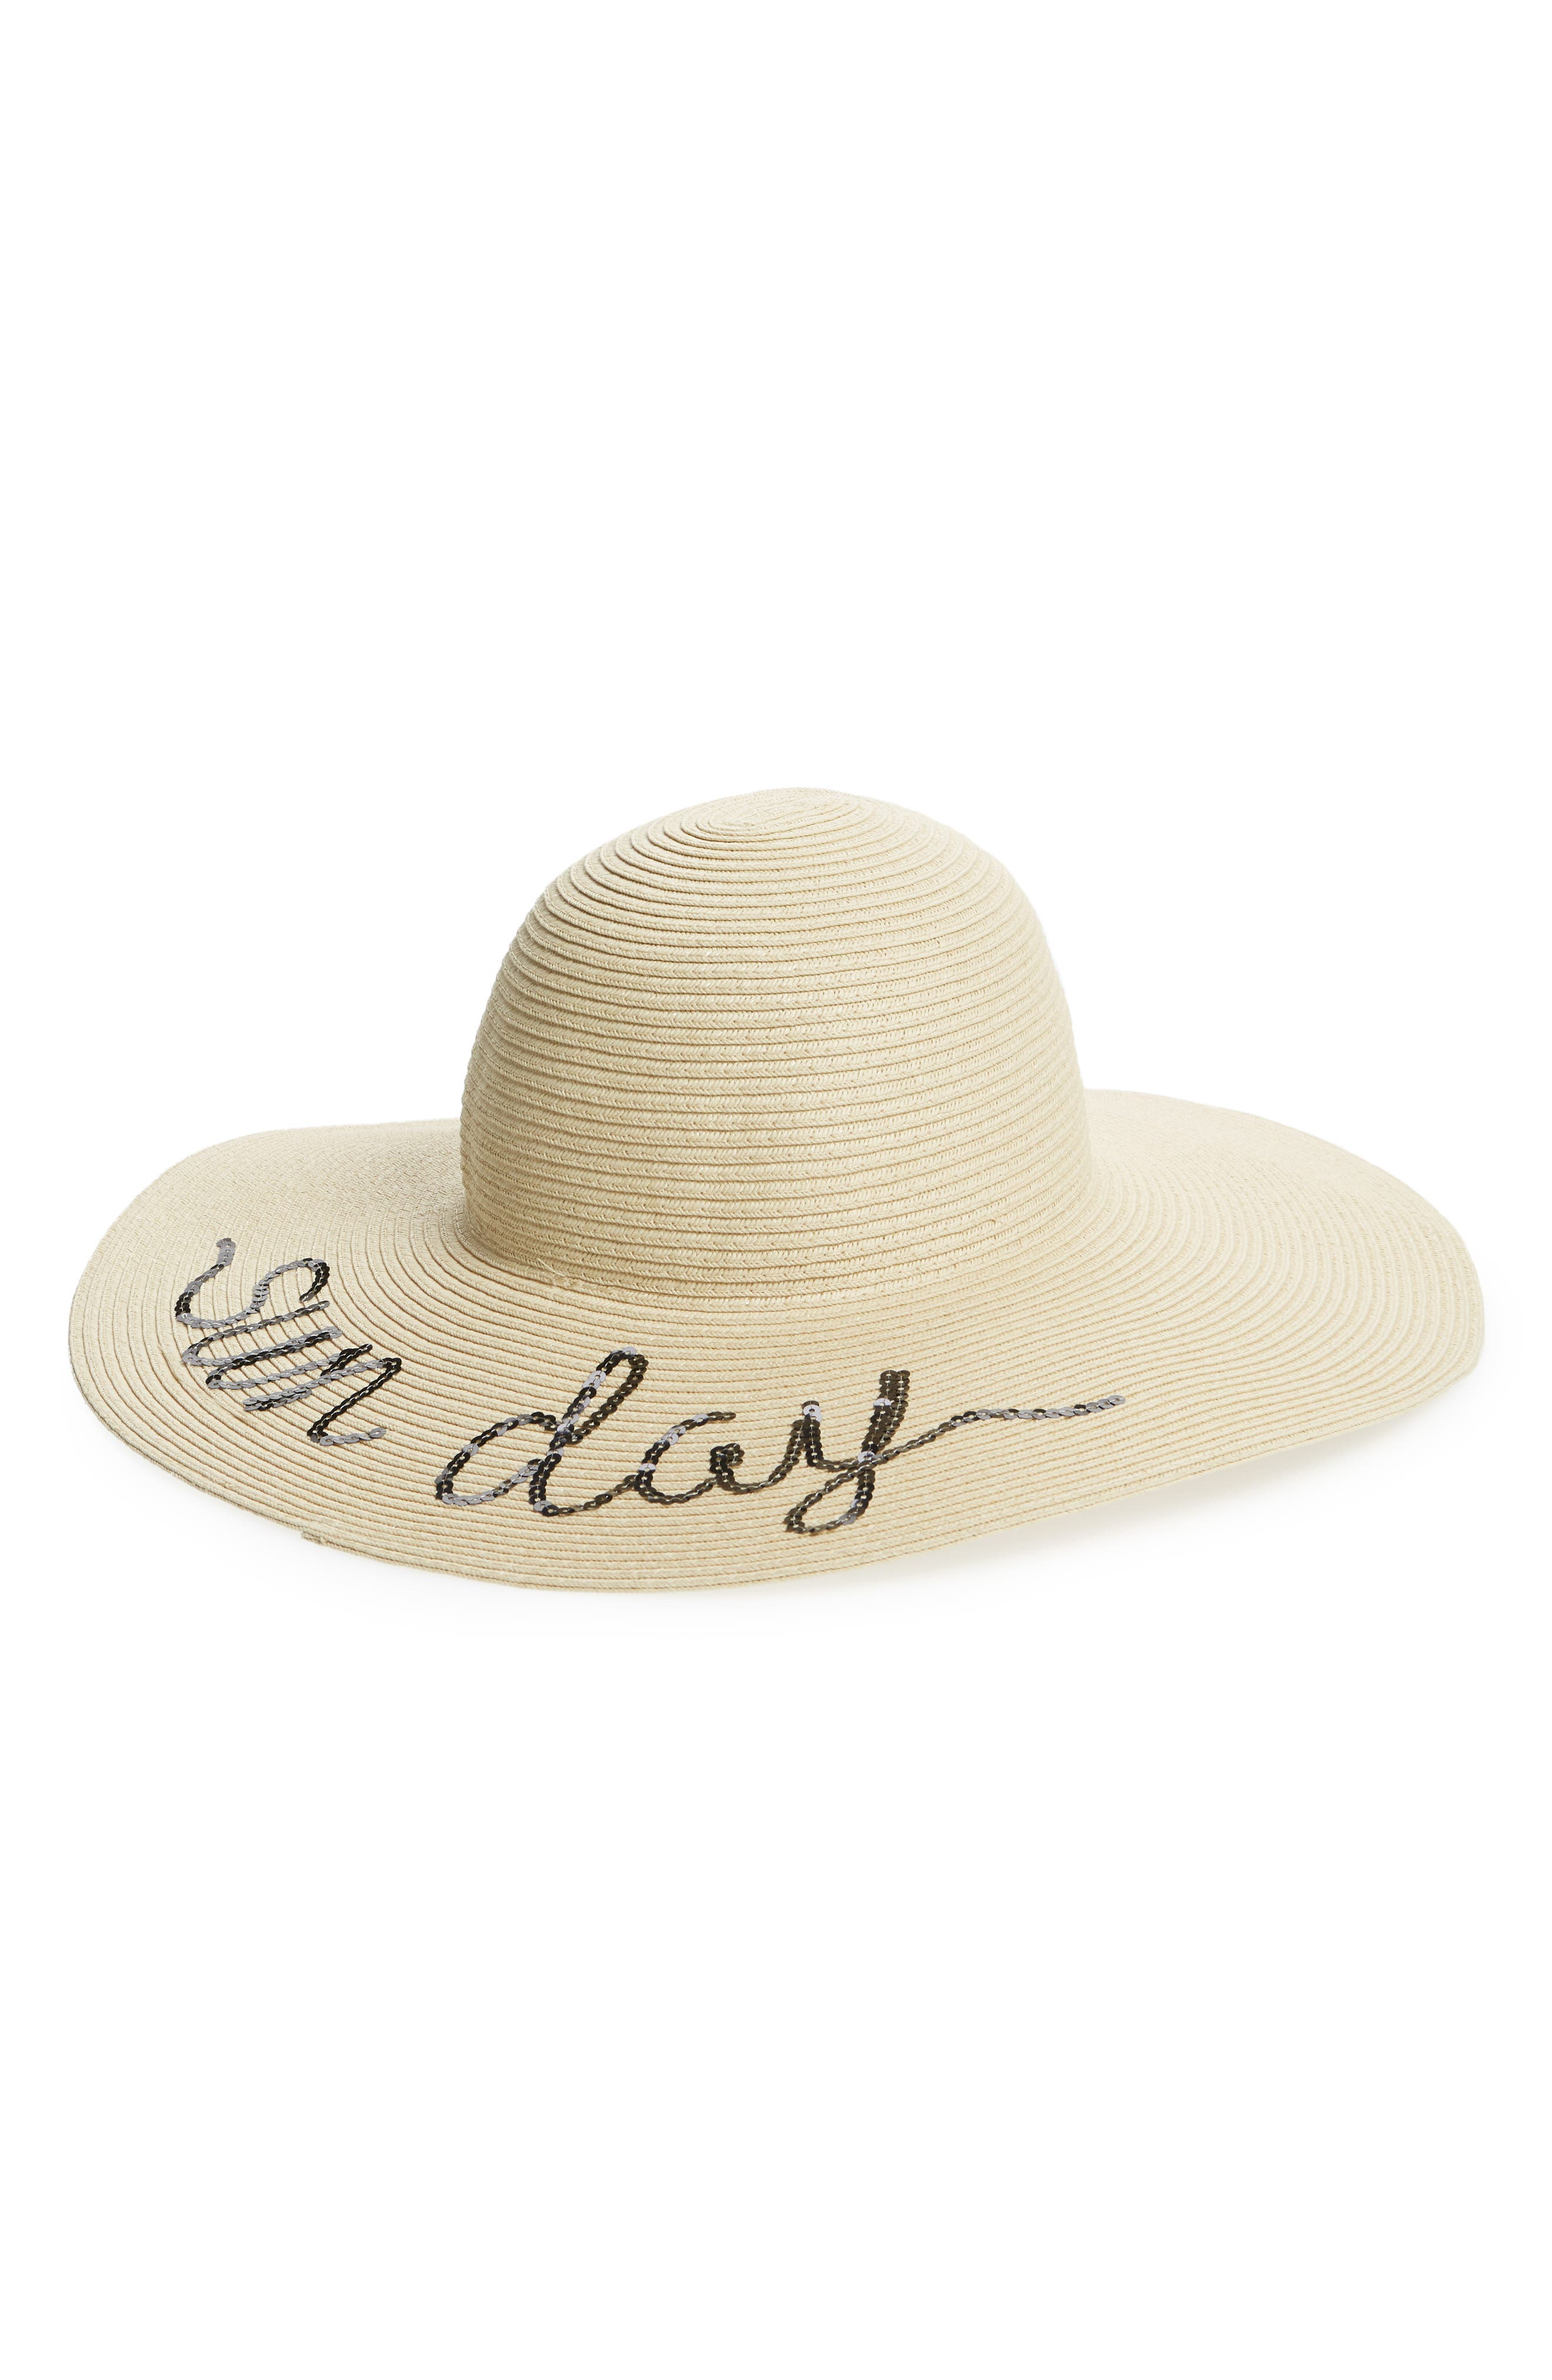 Sequin Embroidered Straw Sun Hat,                             Main thumbnail 1, color,                             Natural